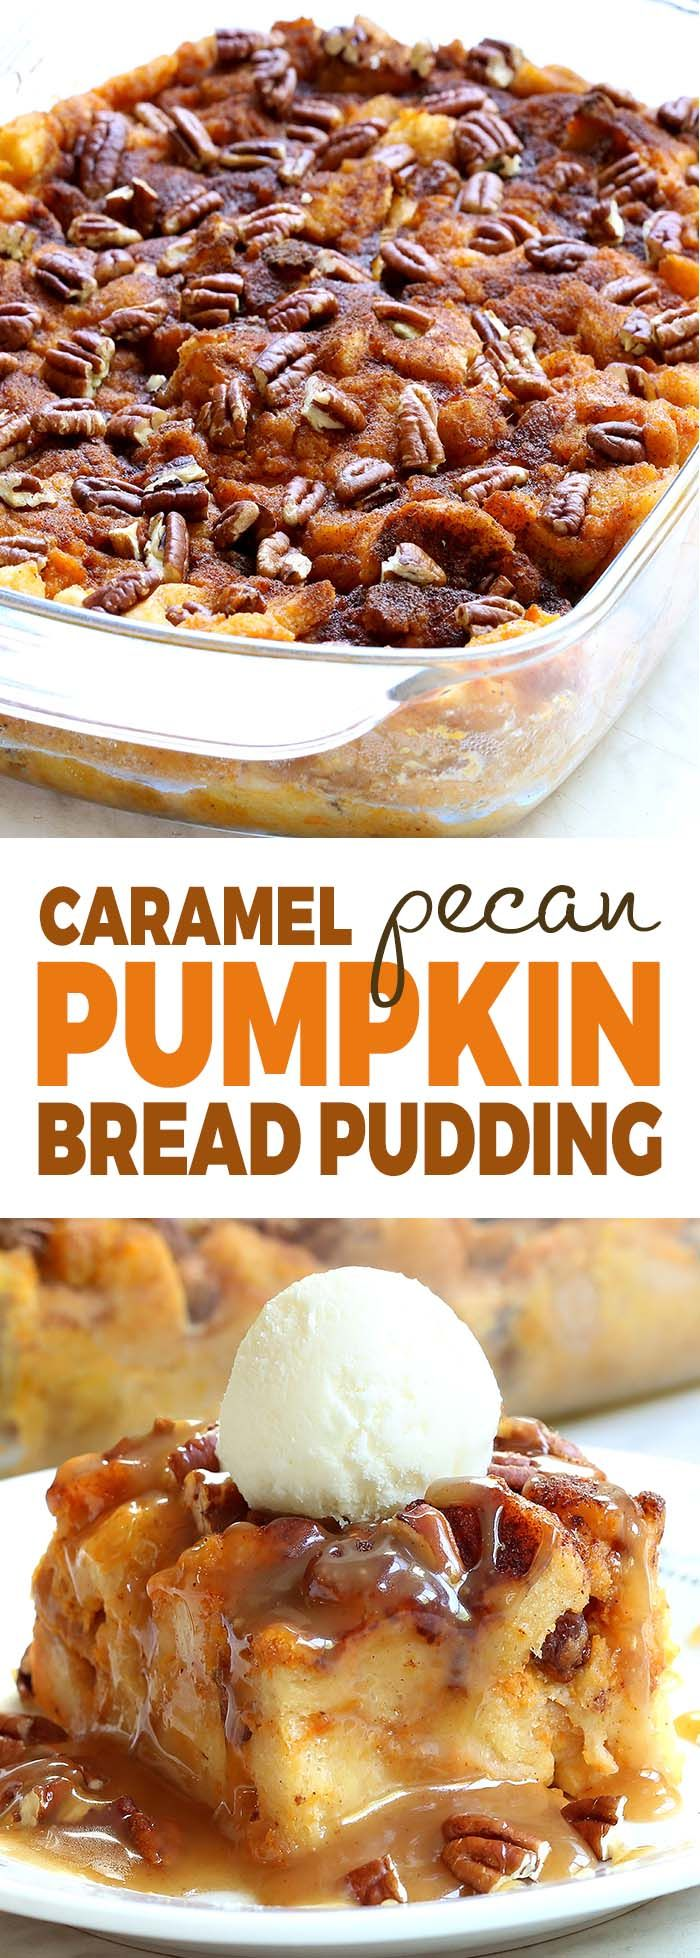 Looking for the ultimate breakfast dish for Thanksgiving?! Look no more! this super-decadent caramel pumpkin pecan bread pudding is an awesome addition to any Thanksgiving table.